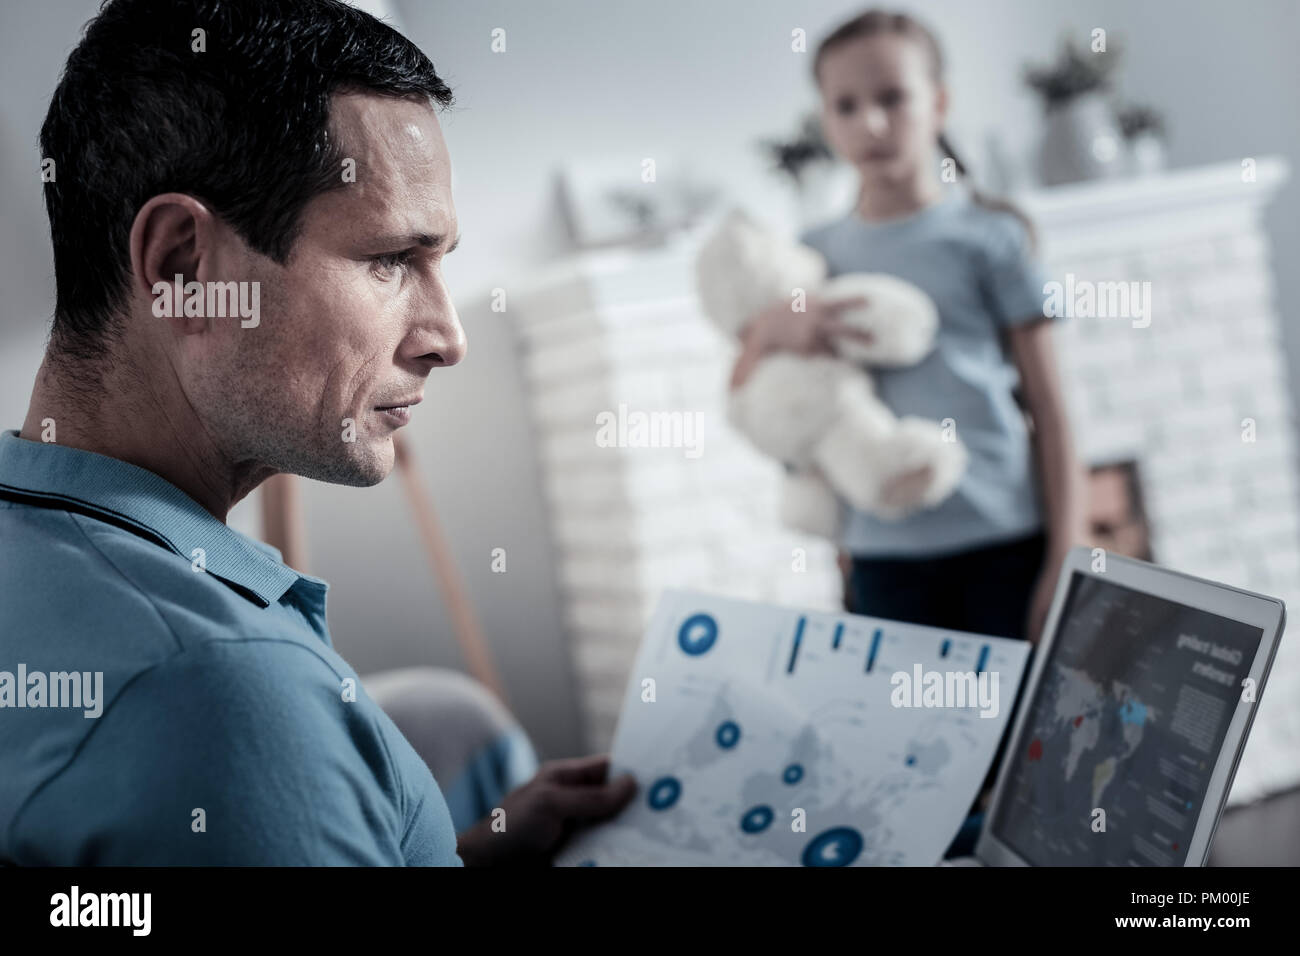 Concentrated man working at home - Stock Image